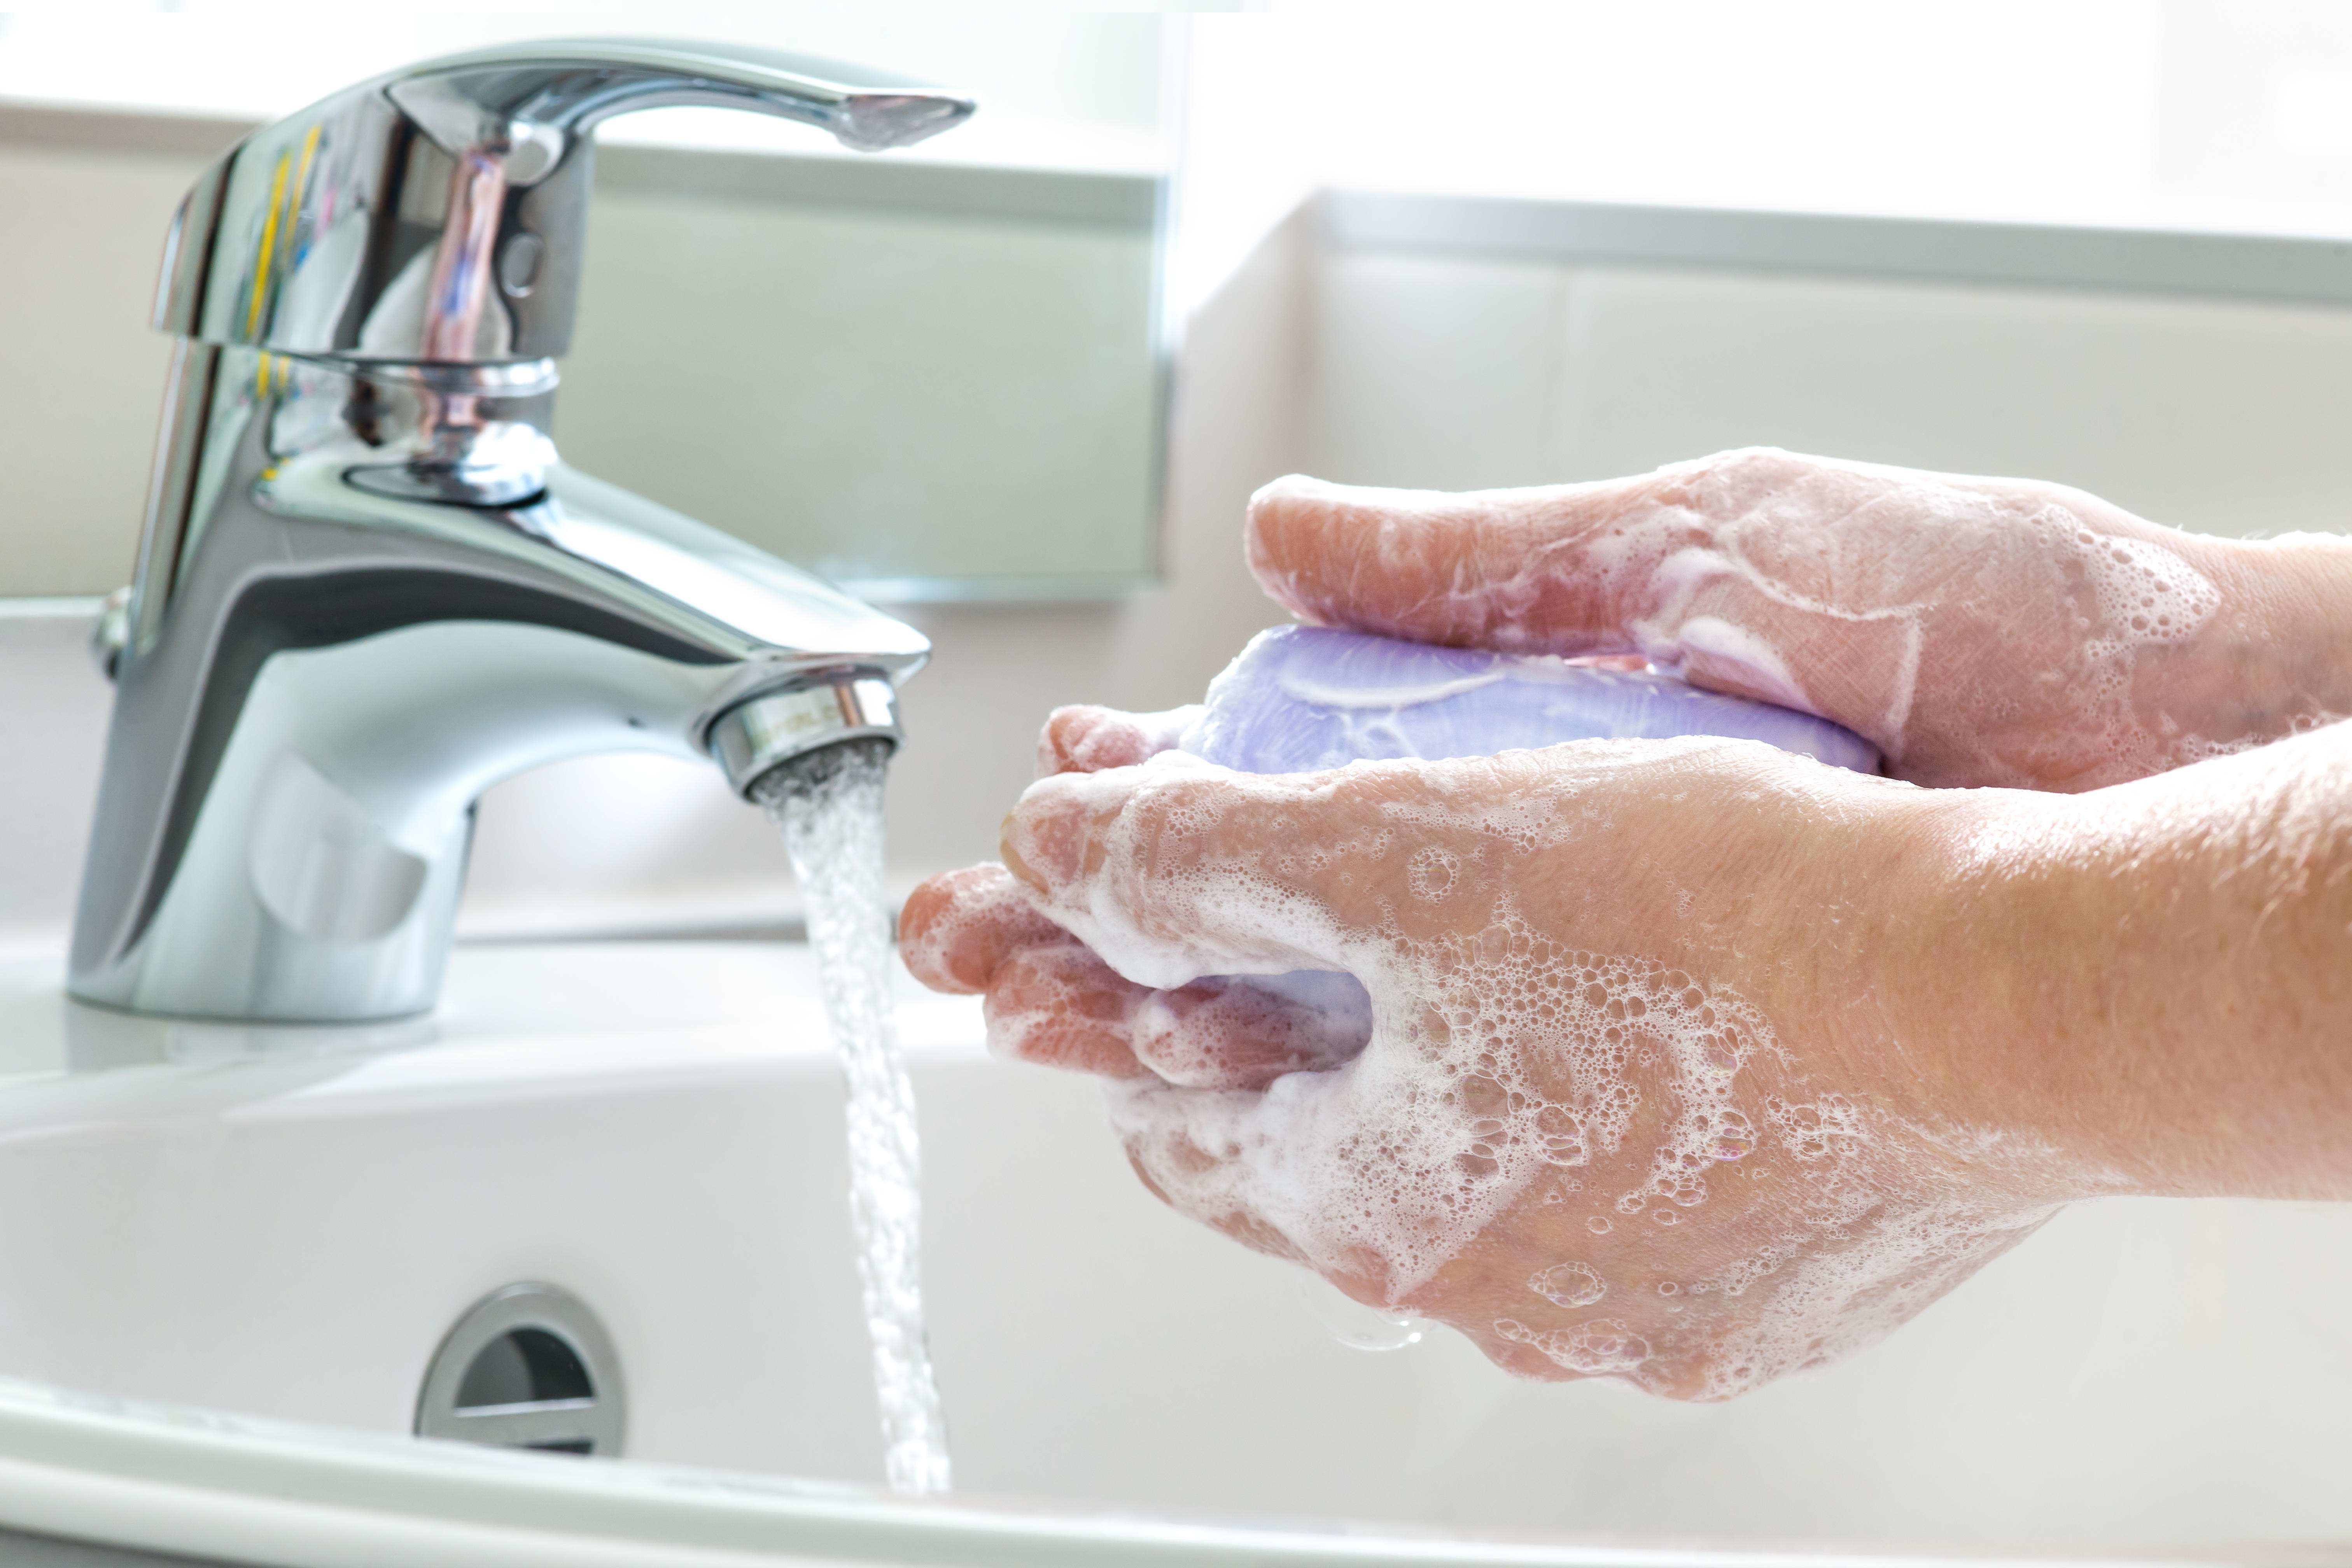 Hand Washing Study Findings Run Counter To Fda Guidelines